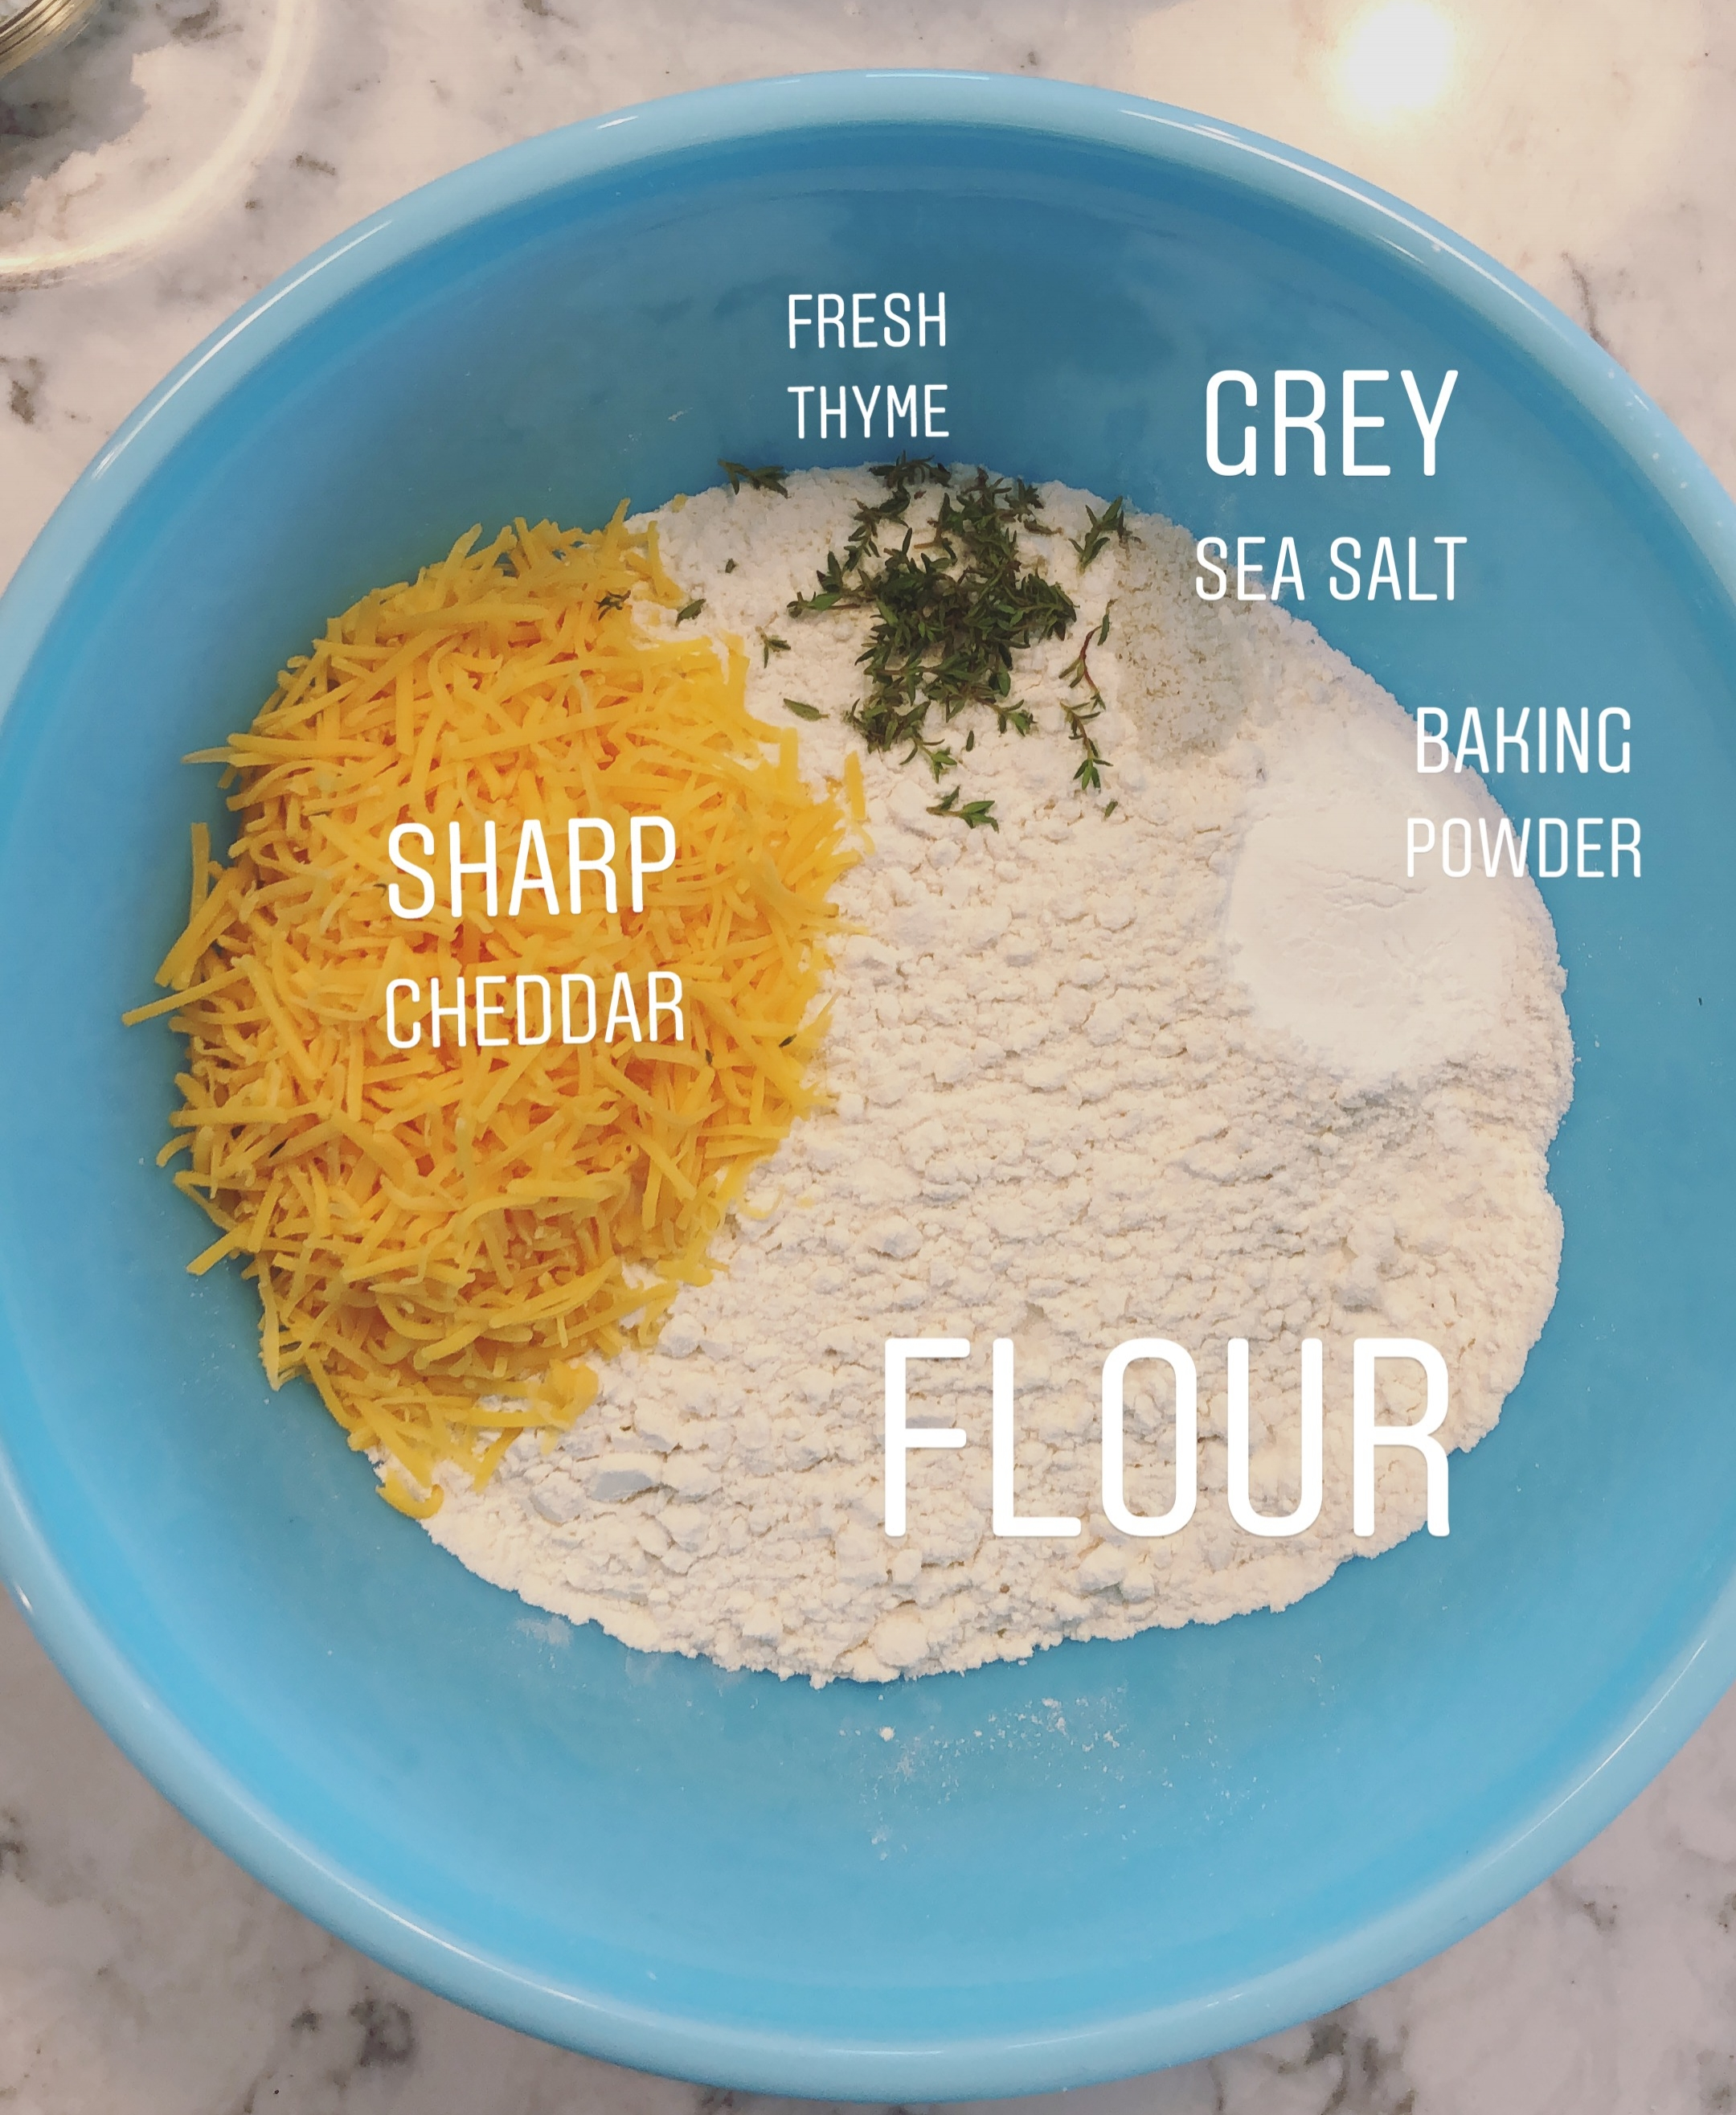 Mix dry ingredients until well combined.